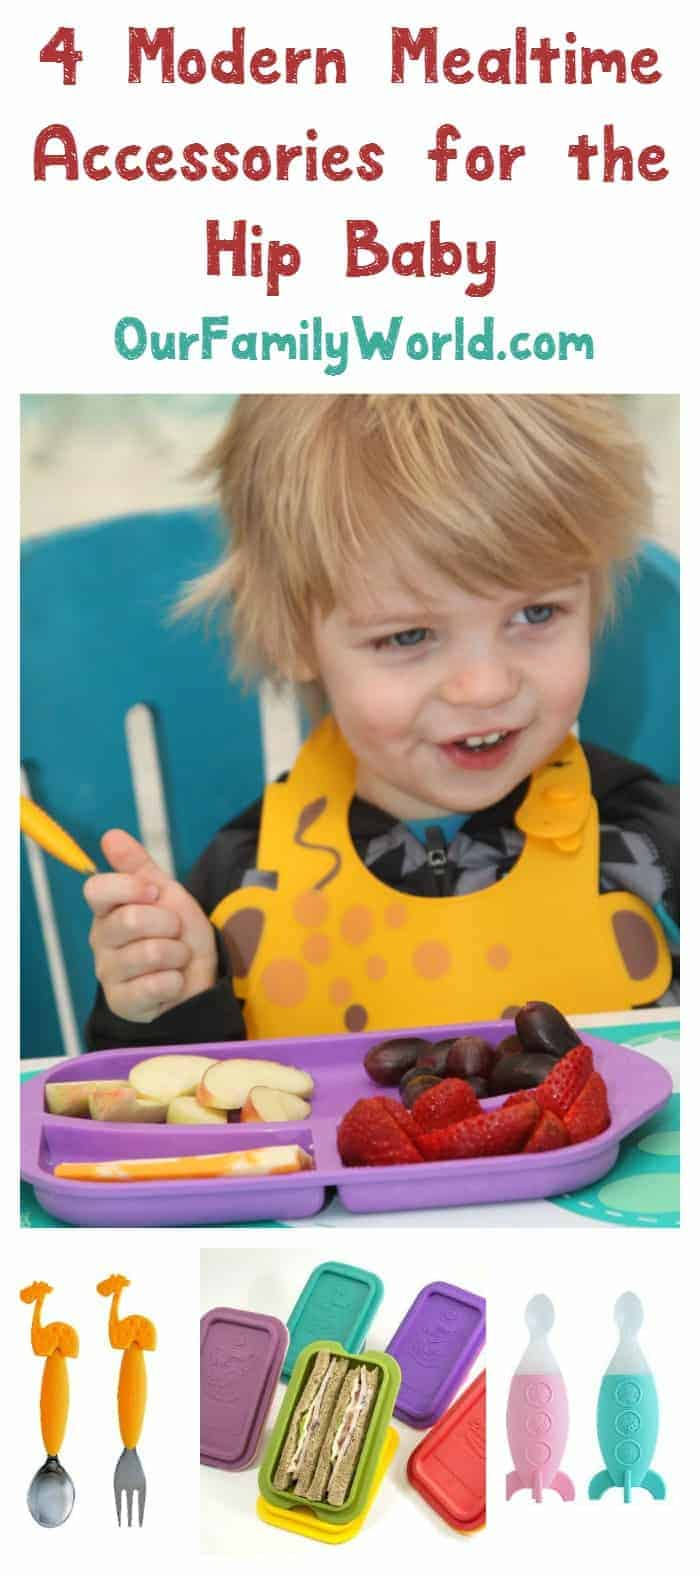 These modern mealtime accessories for baby are so much fun! Check them out and make the transition to solid food easier for your tiny tot!